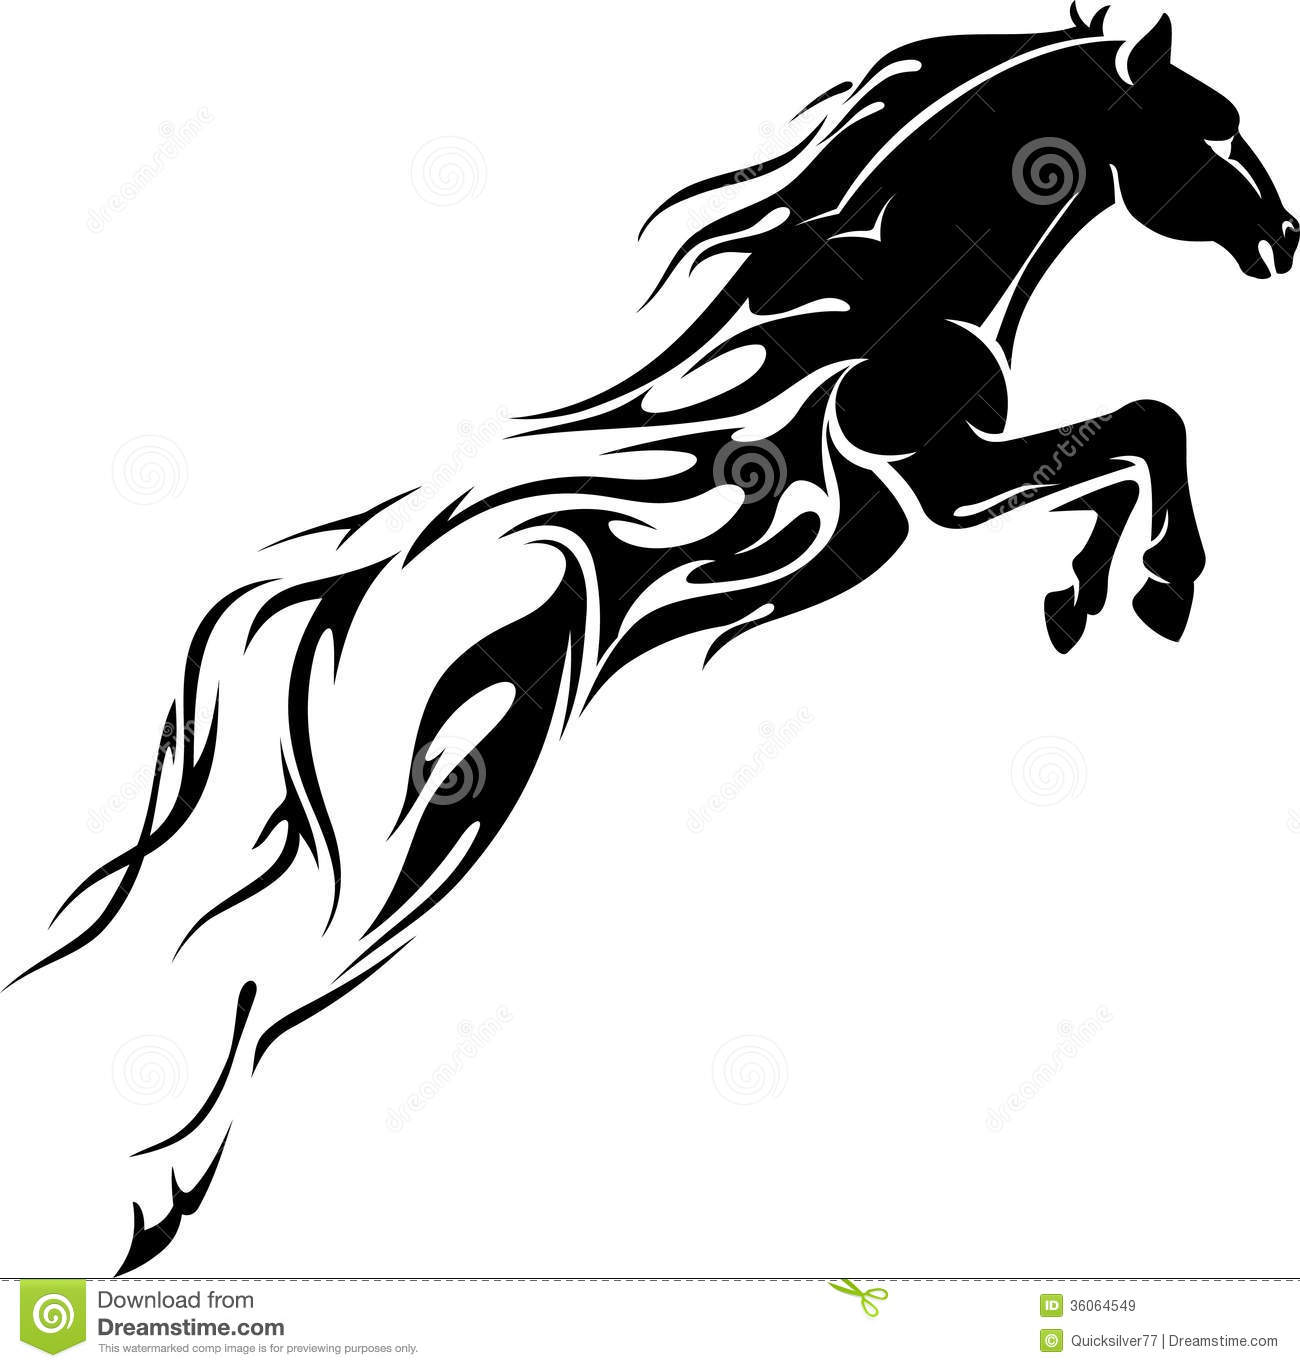 Flaming Horse Power Royalty Free Stock Images - Image: 36064549